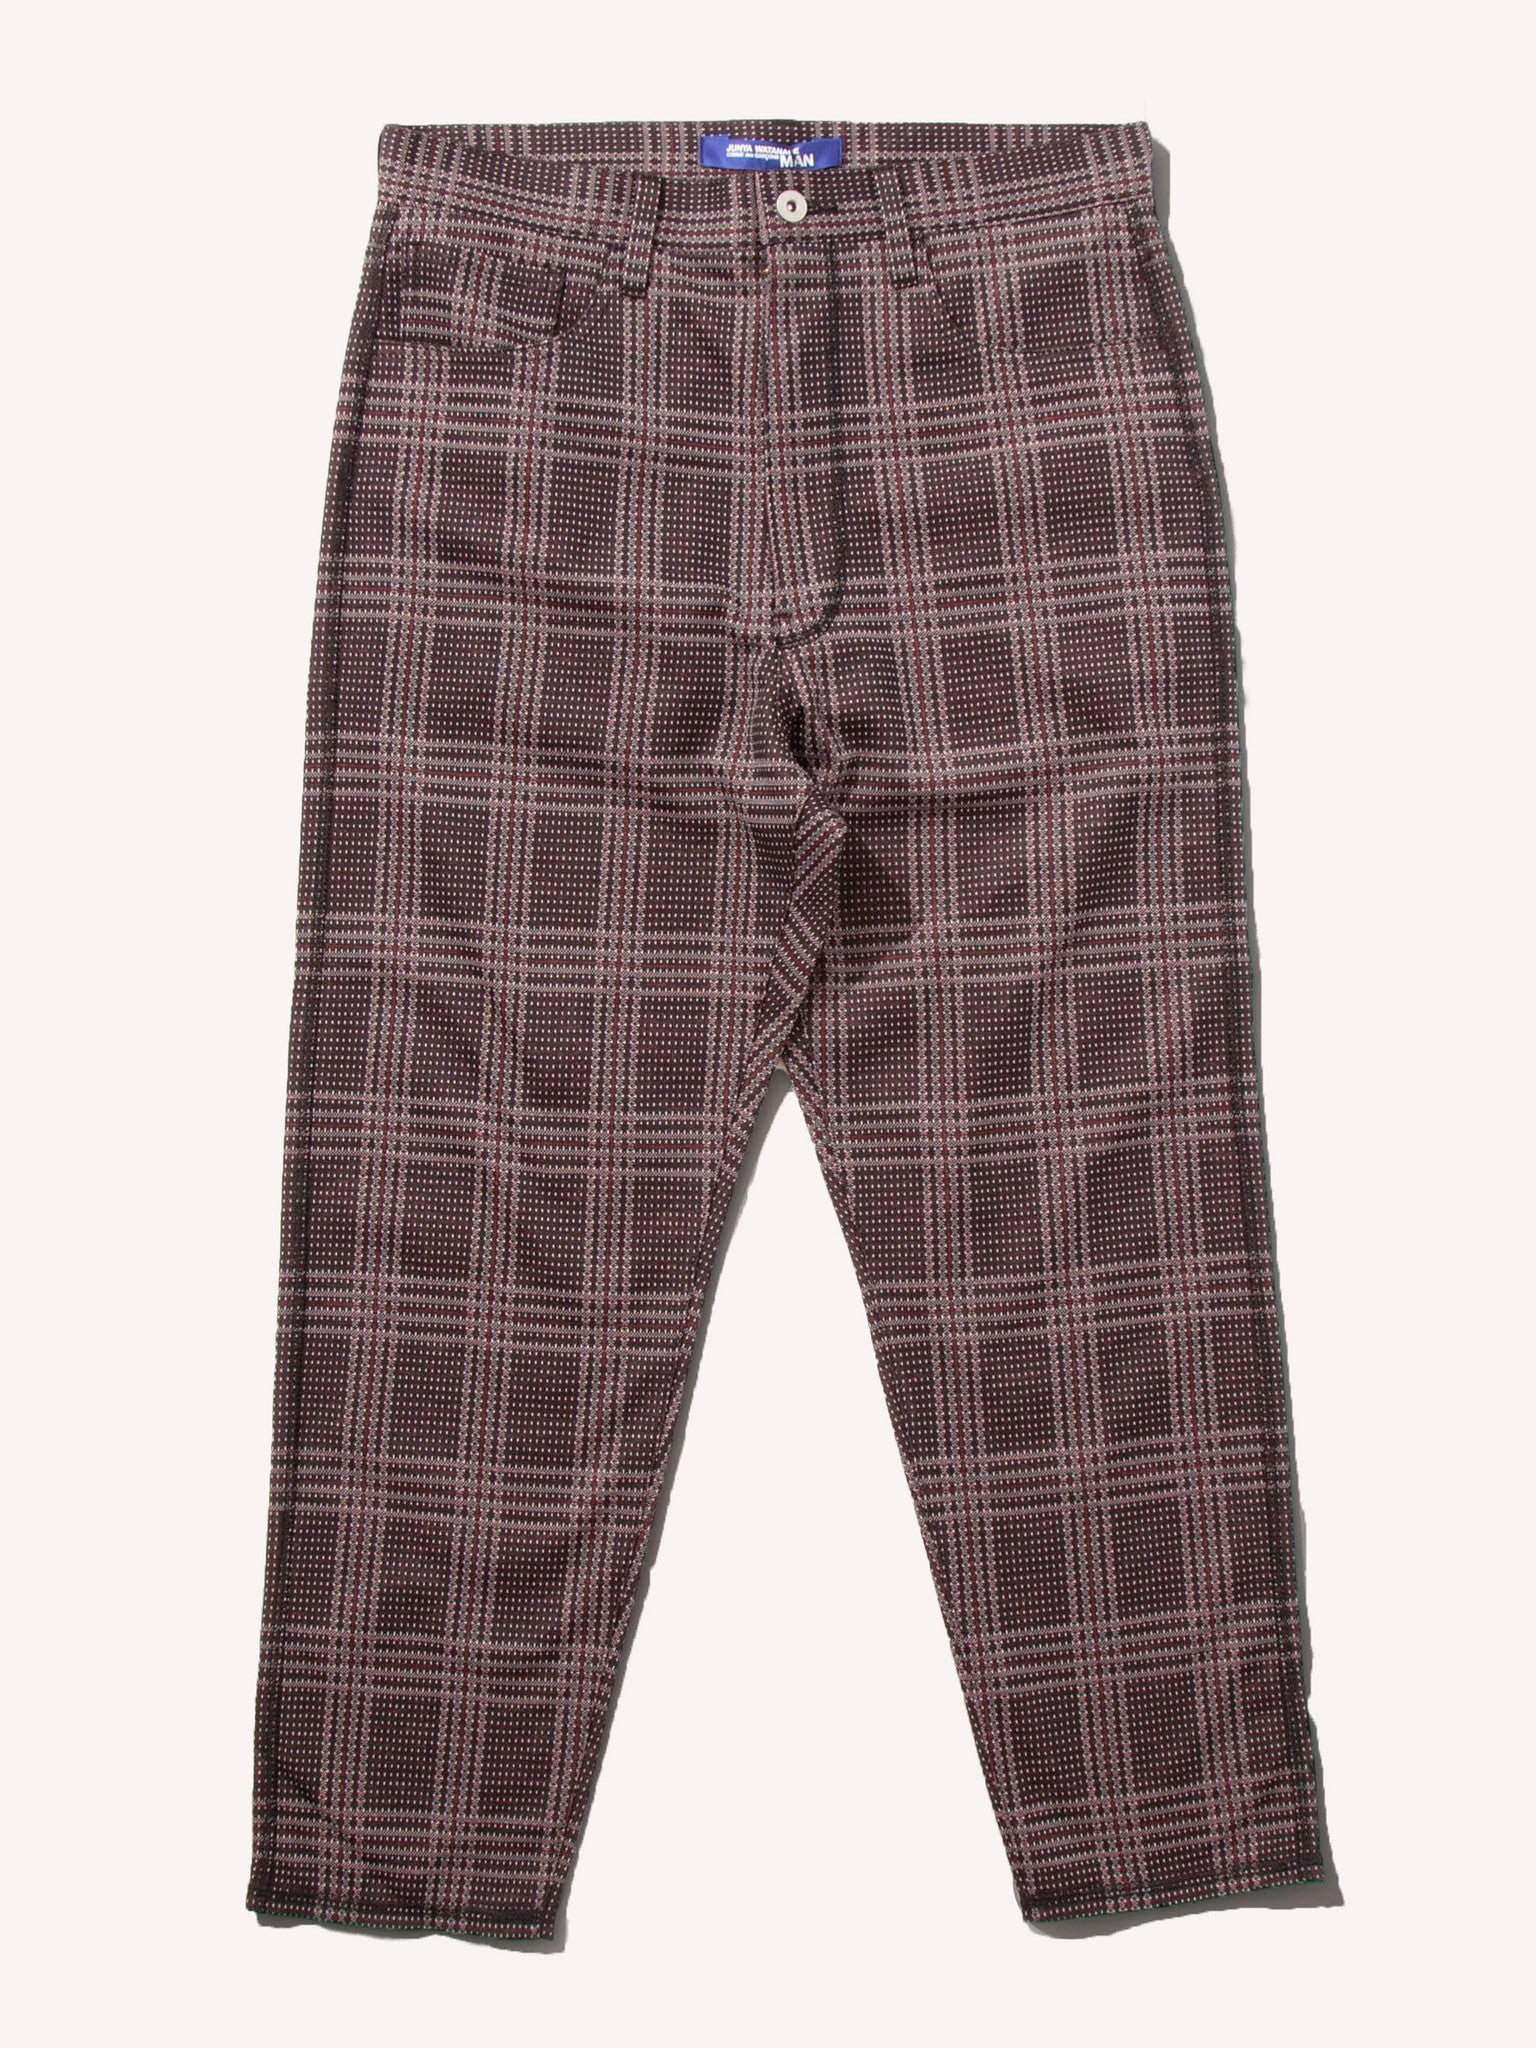 S 5 Pkt Patterned Trouser 1